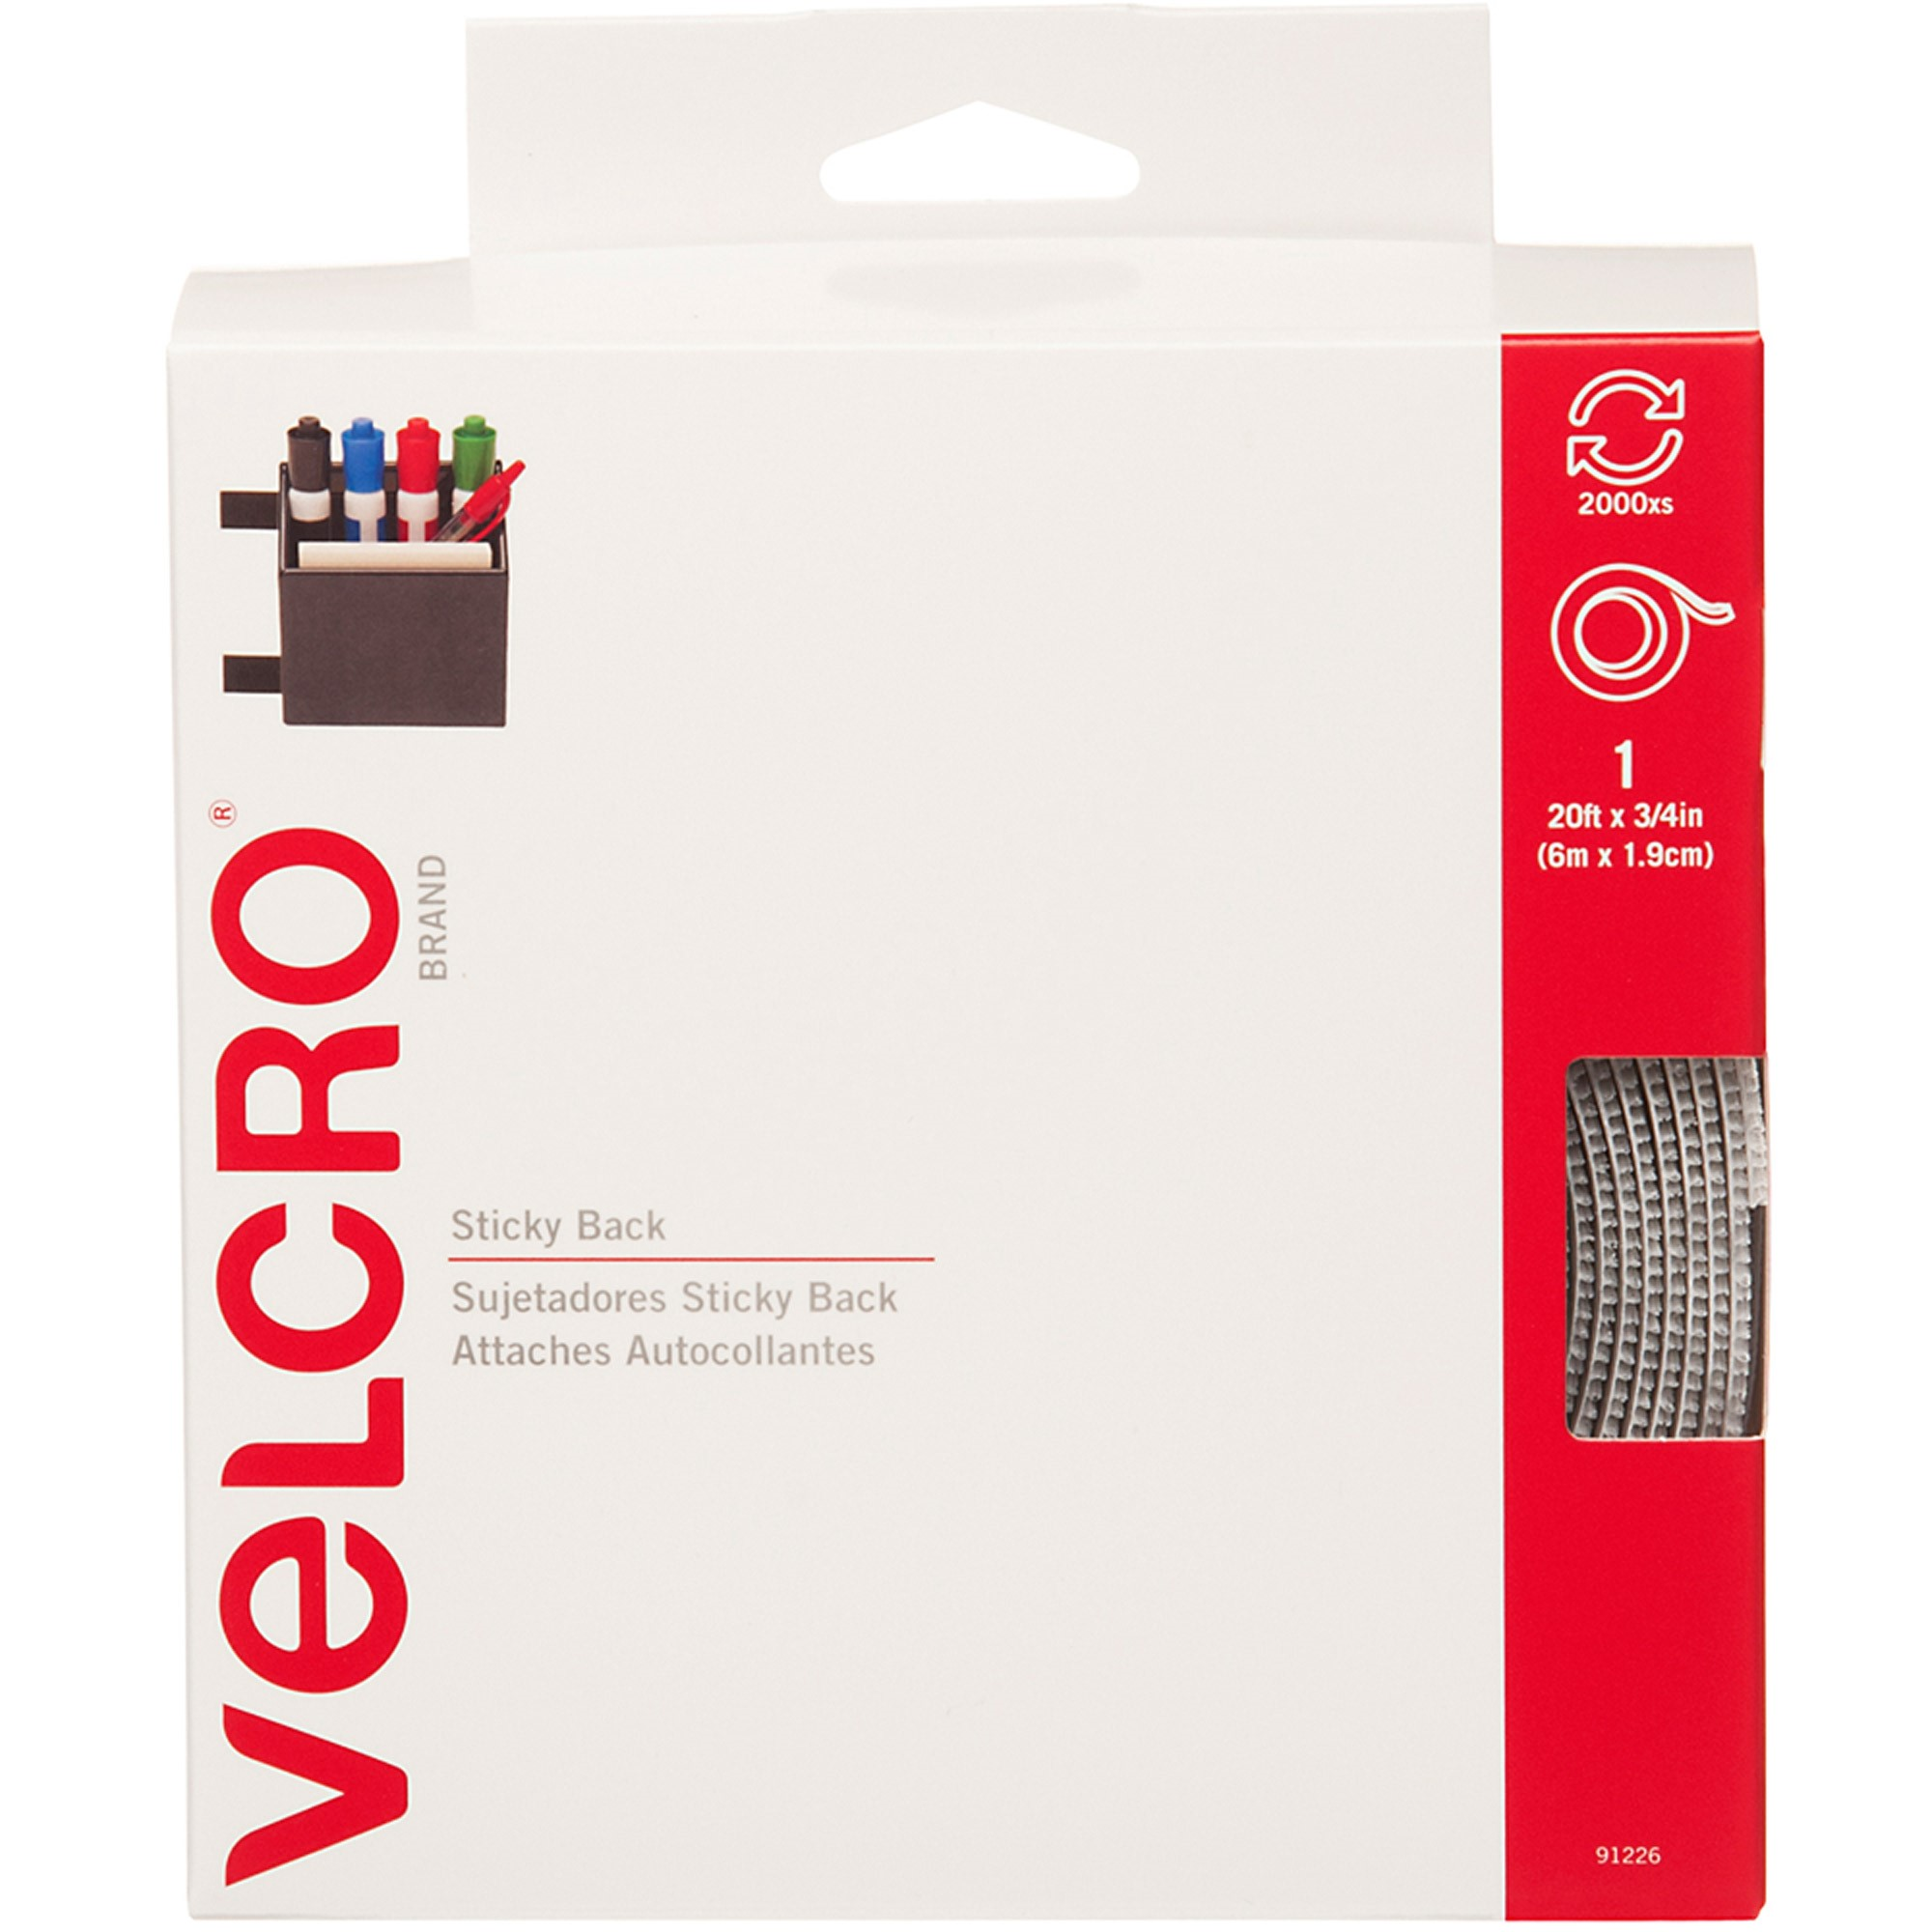 VELCRO Brand Sticky Back 20ft x 3/4in Roll, White